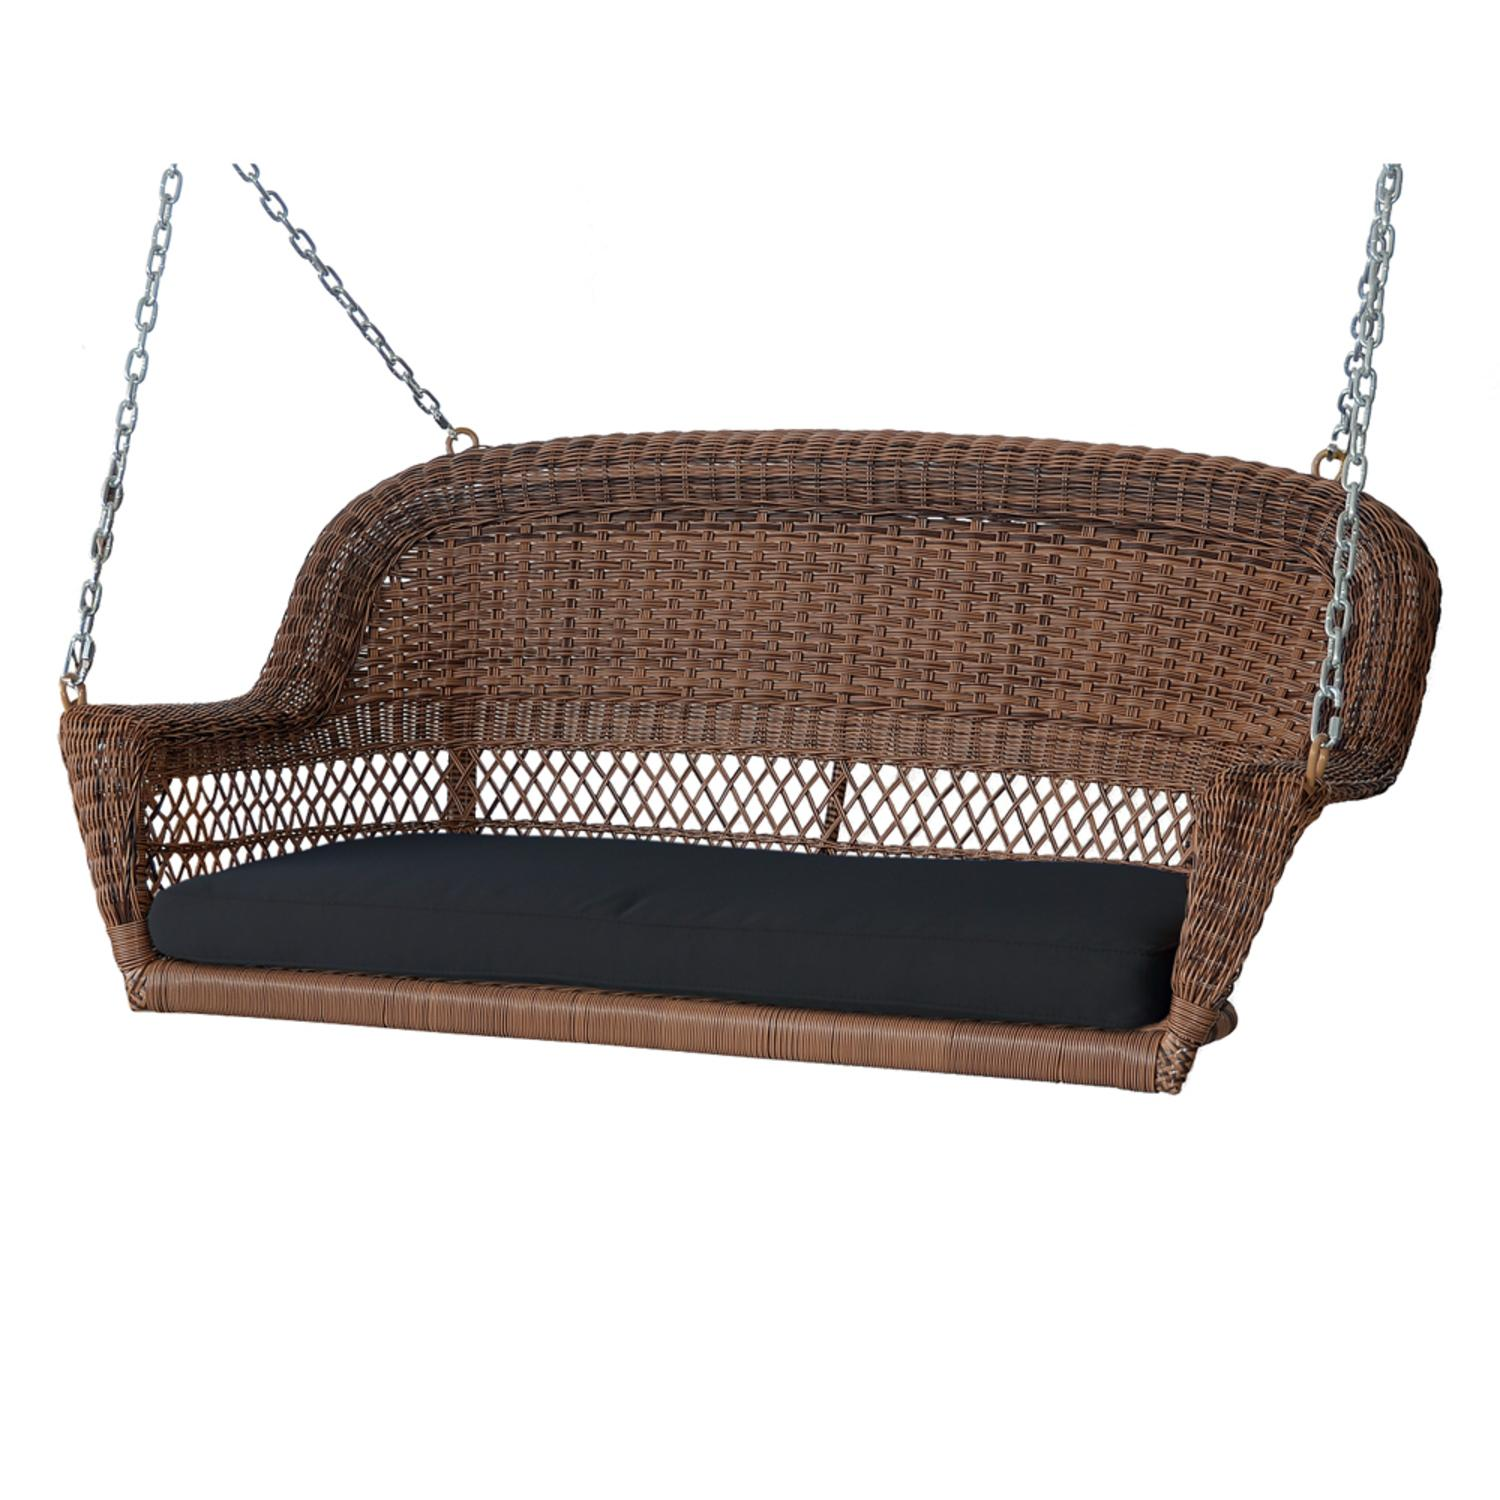 """51.5"""" Hand Woven Honey Brown Resin Wicker Outdoor Porch Swing with Black Cushion by CC Outdoor Living"""